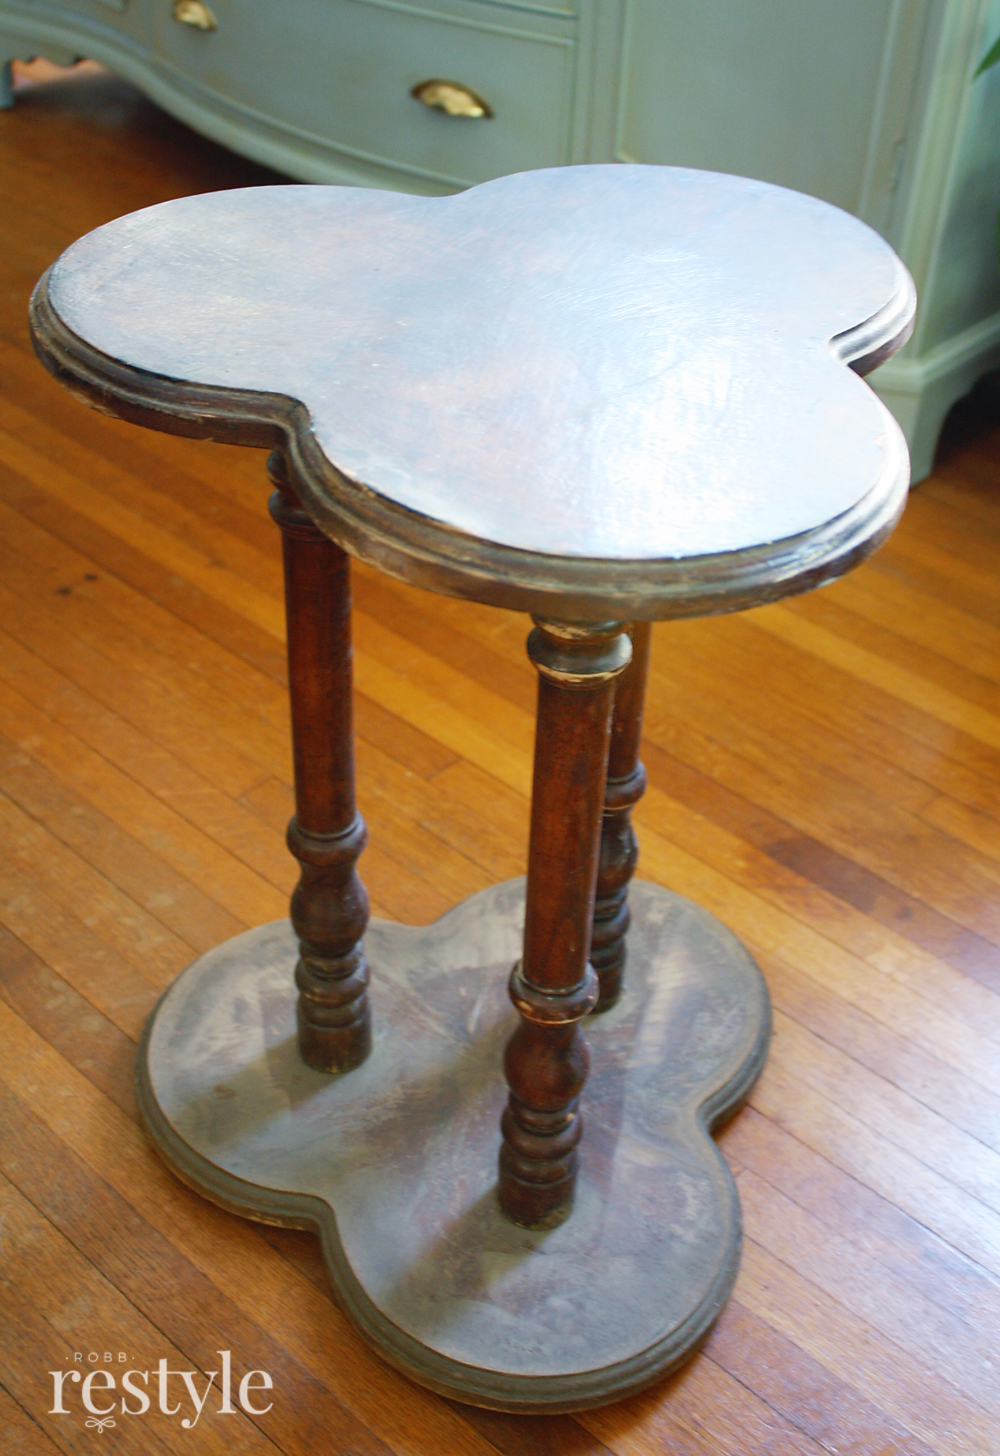 clover leaf table before